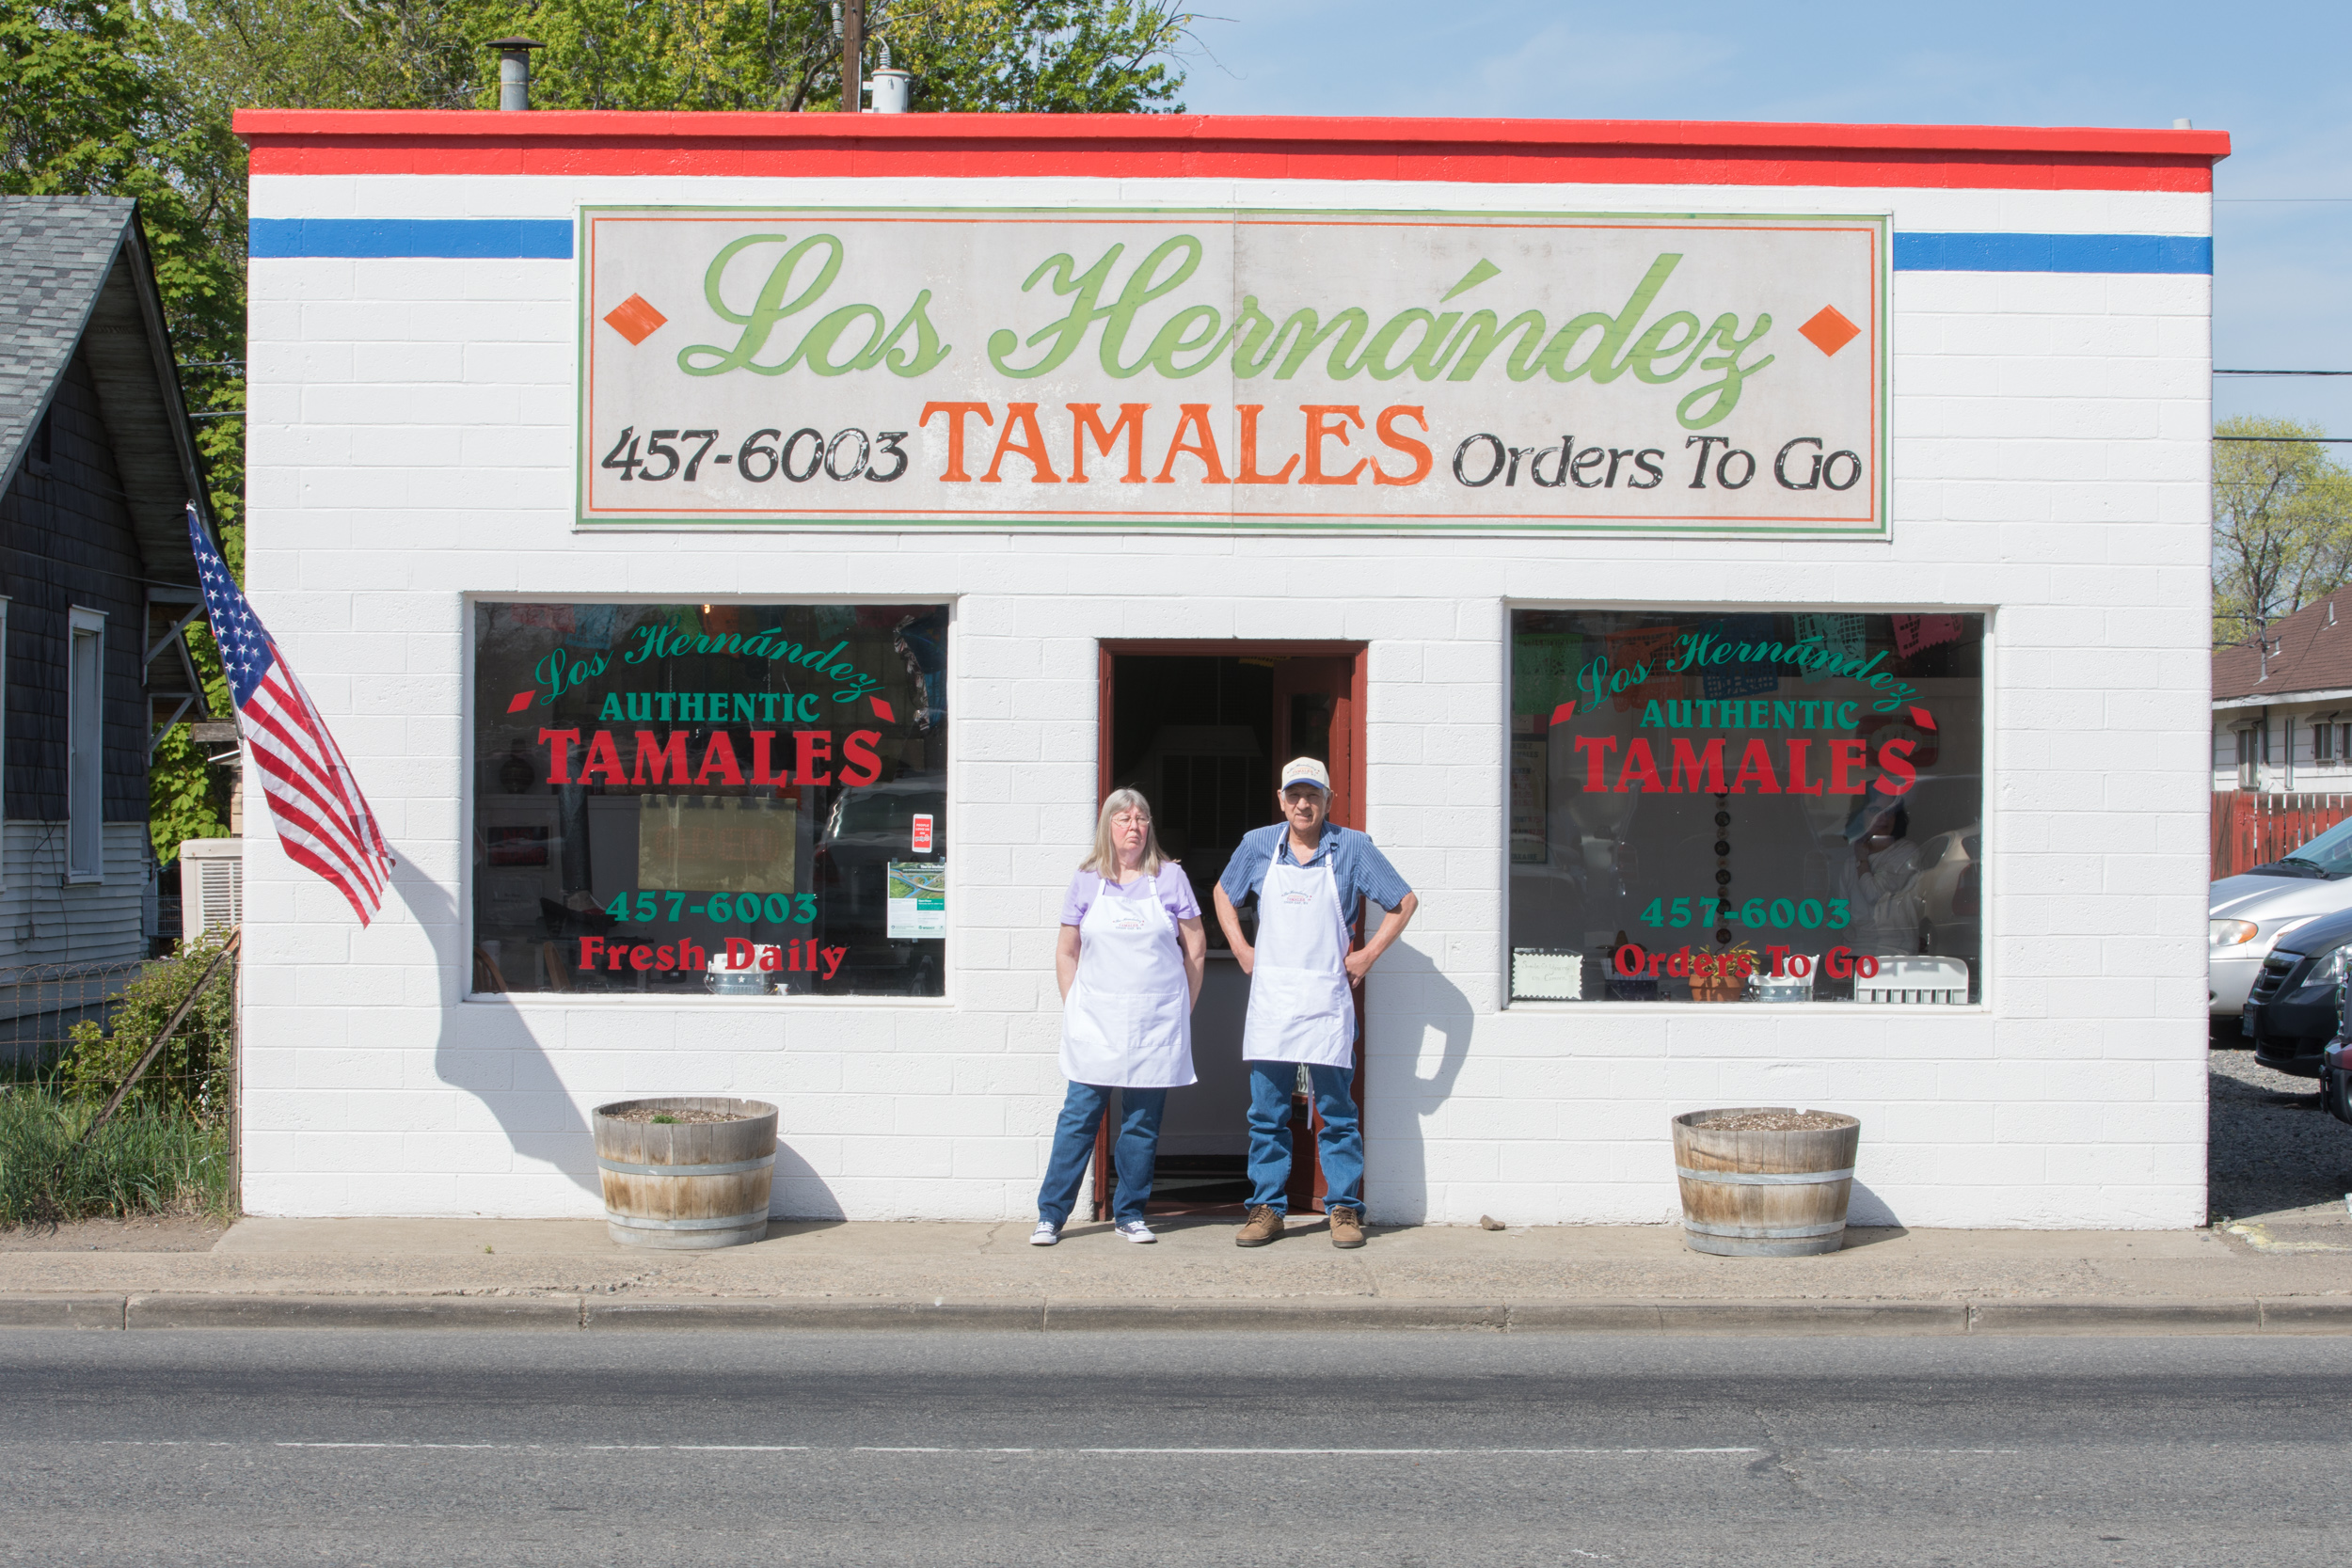 Los Hernández Tamales in Union Gap, Washington.